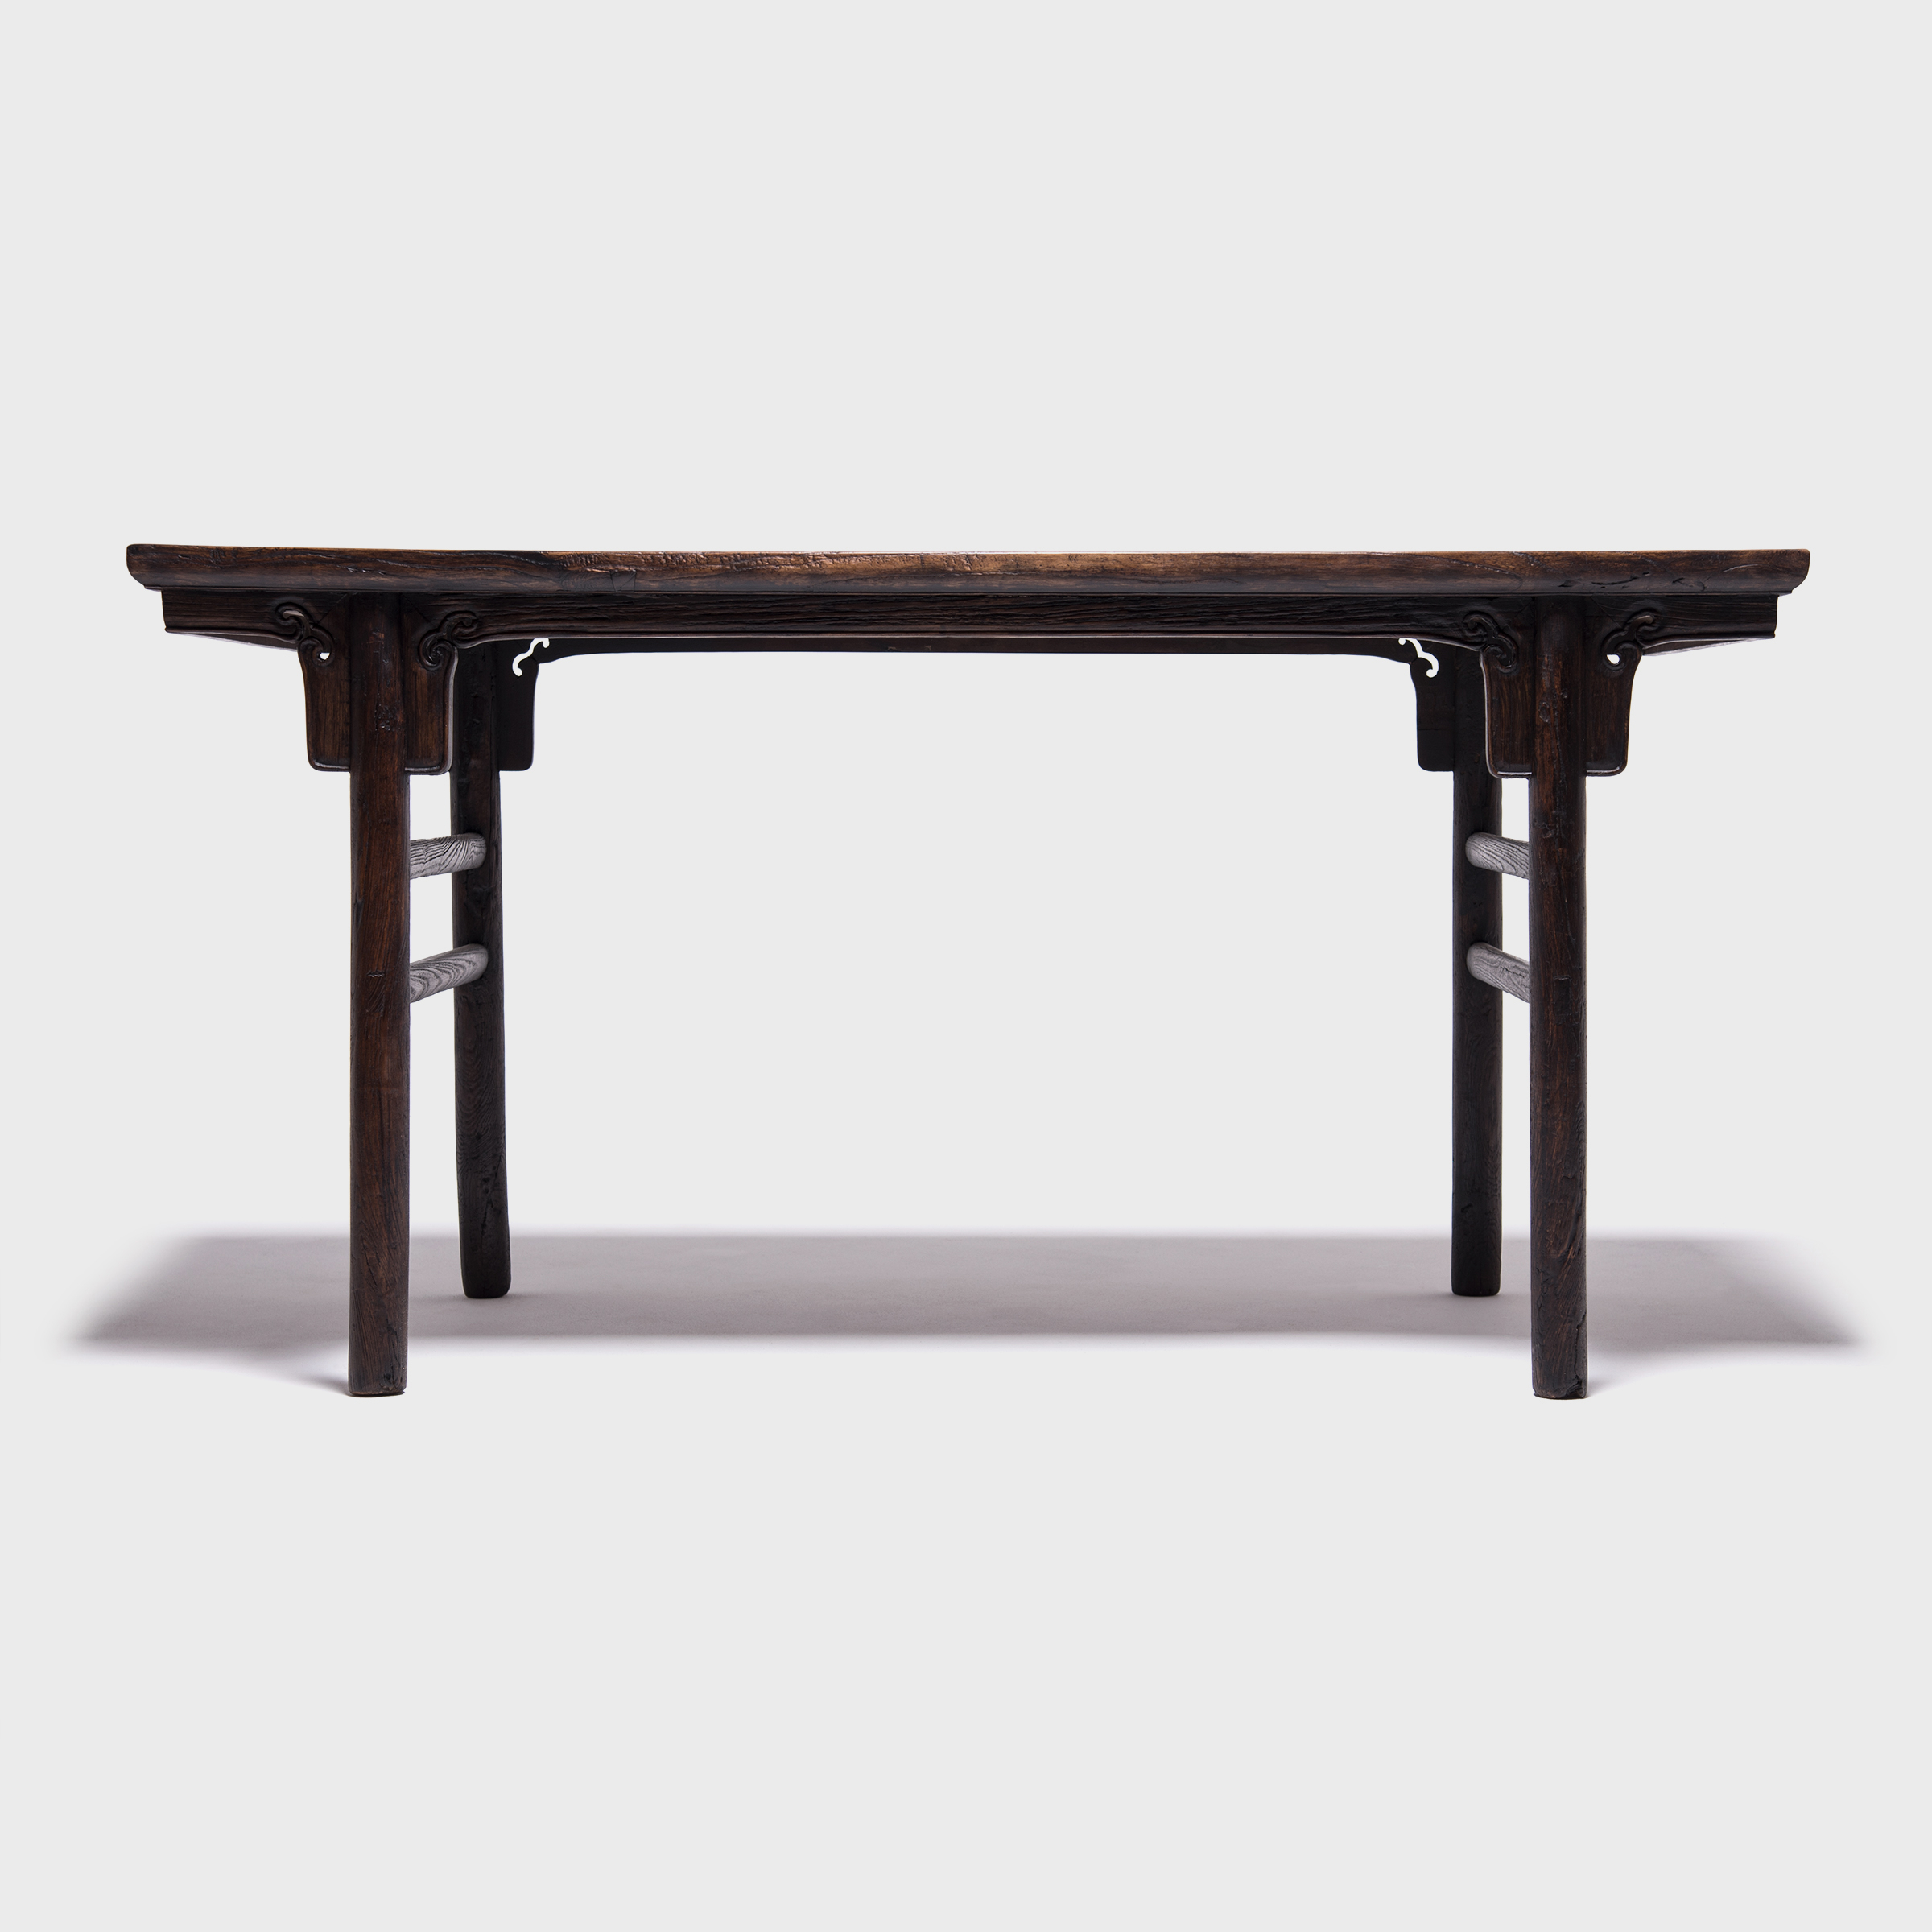 Chinese Tables And Antique Chinese Tables | Pagoda Red For Era Limestone Console Tables (View 5 of 20)